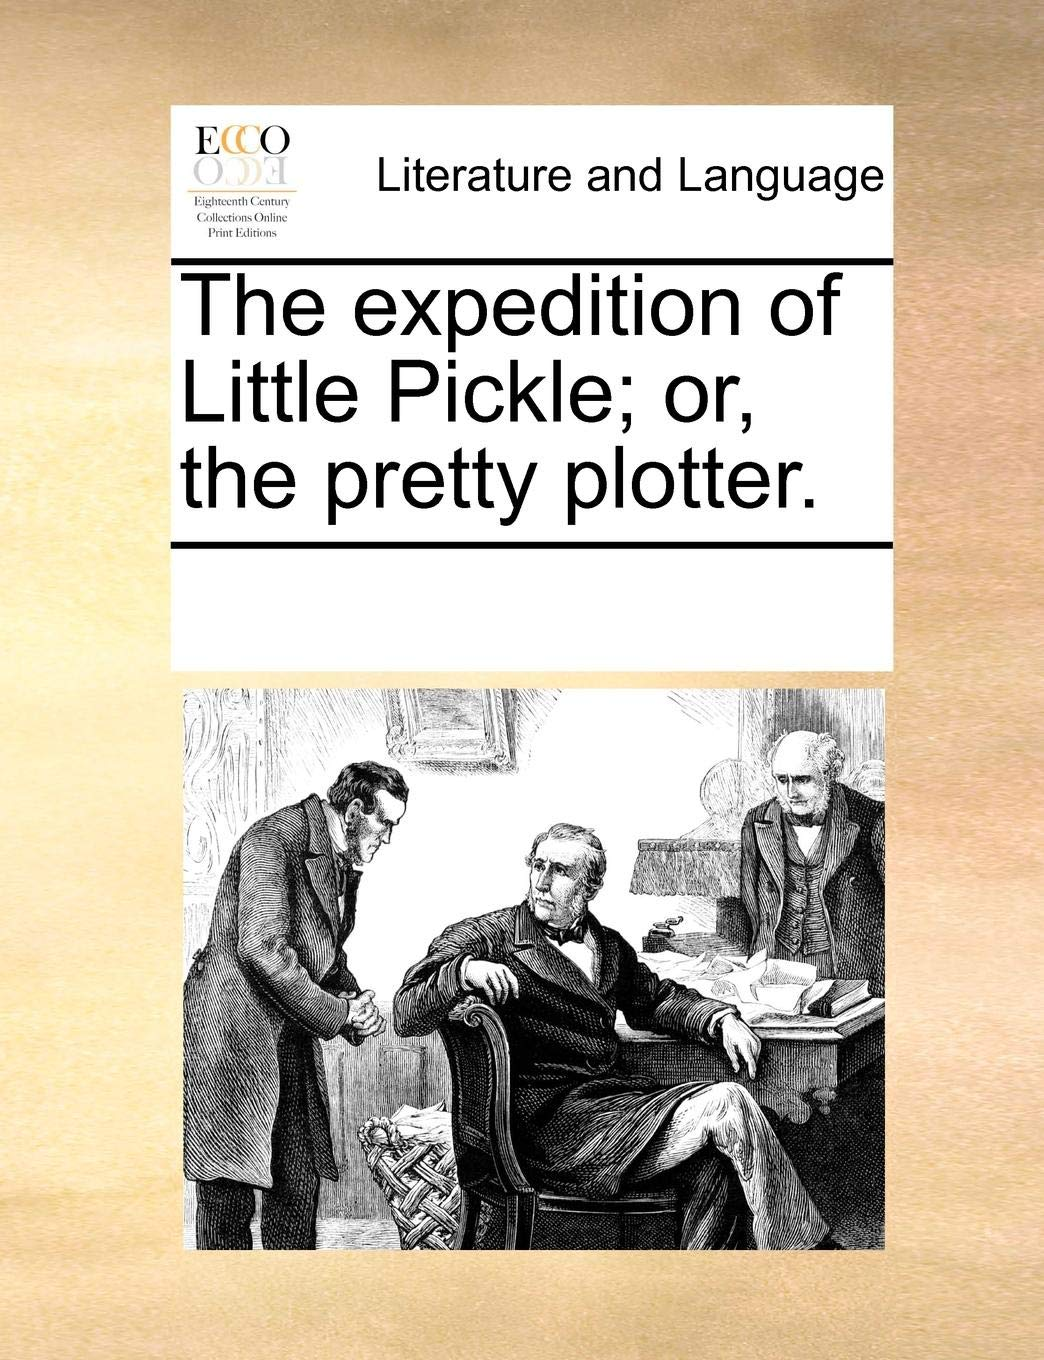 The expedition of Little Pickle; or, the pretty plotter.: Amazon ...